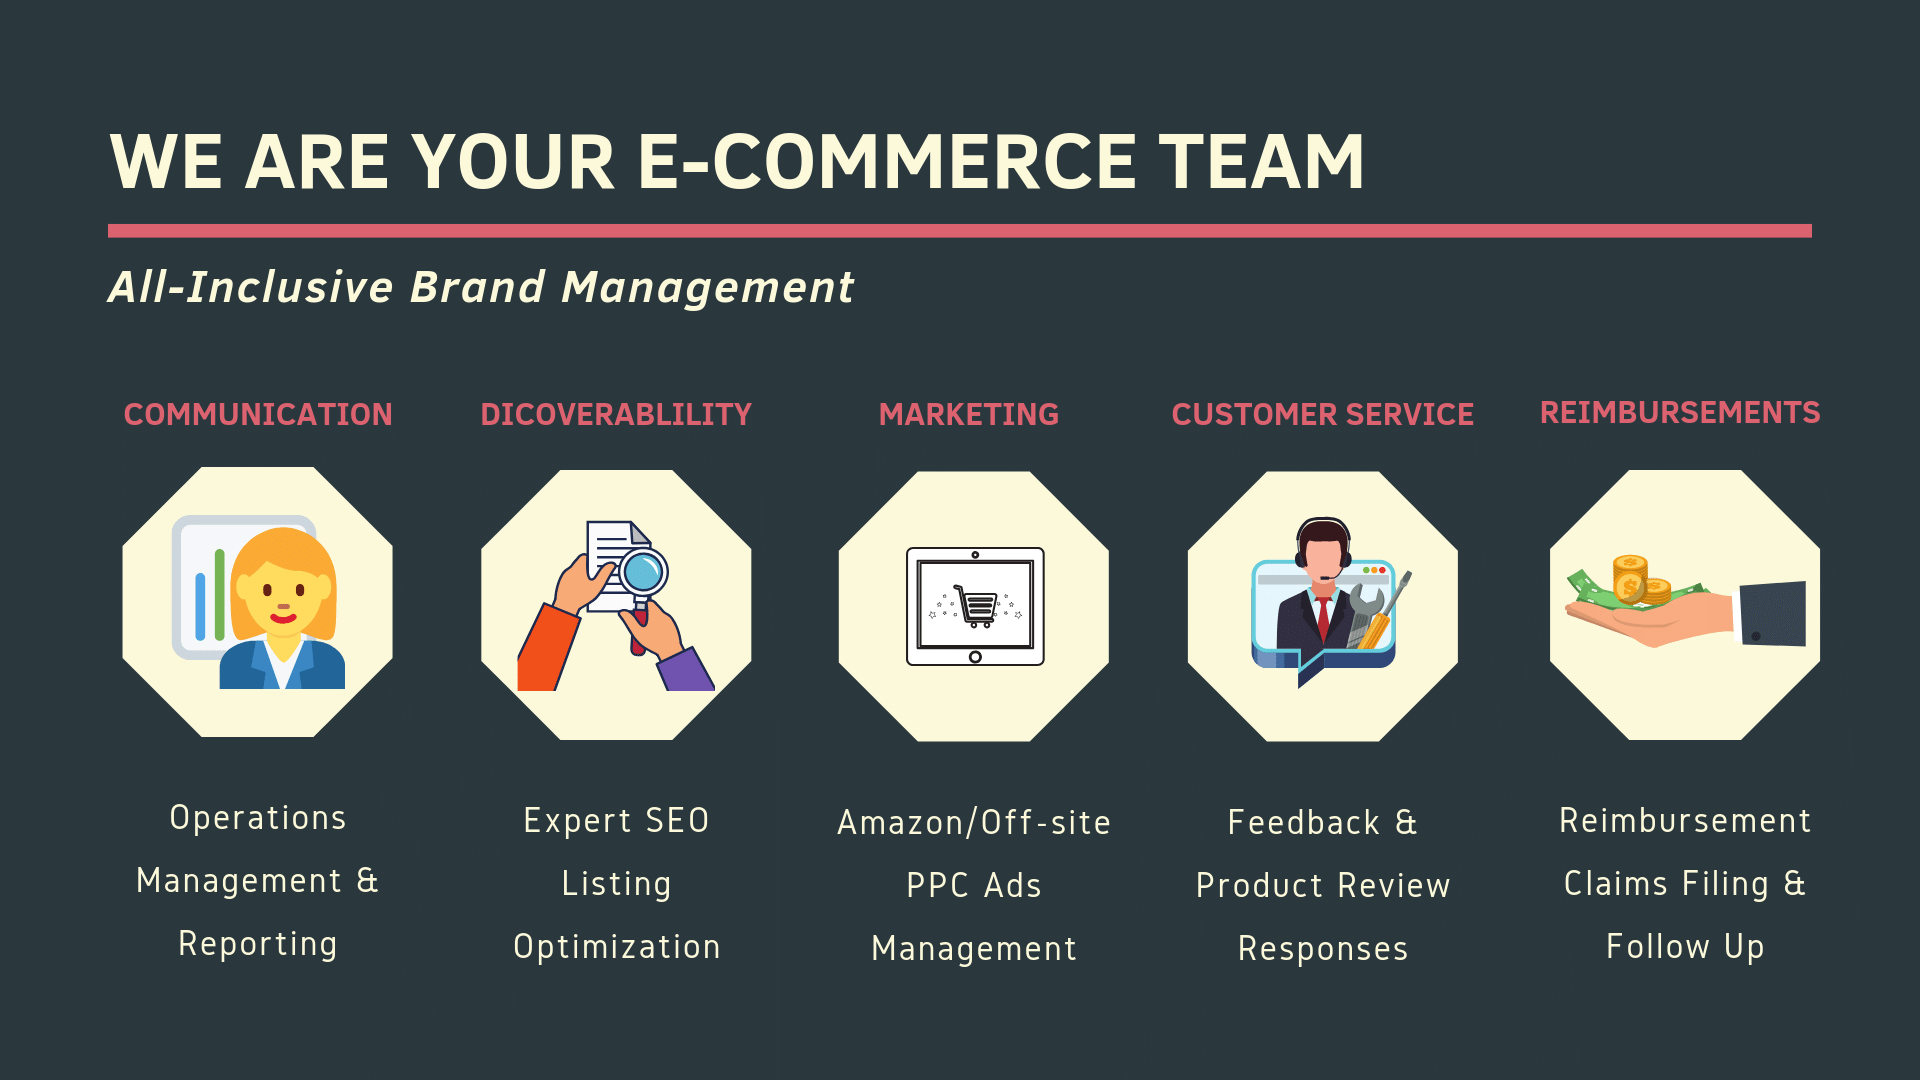 Digital Fire E-Commerce Brand Management Team